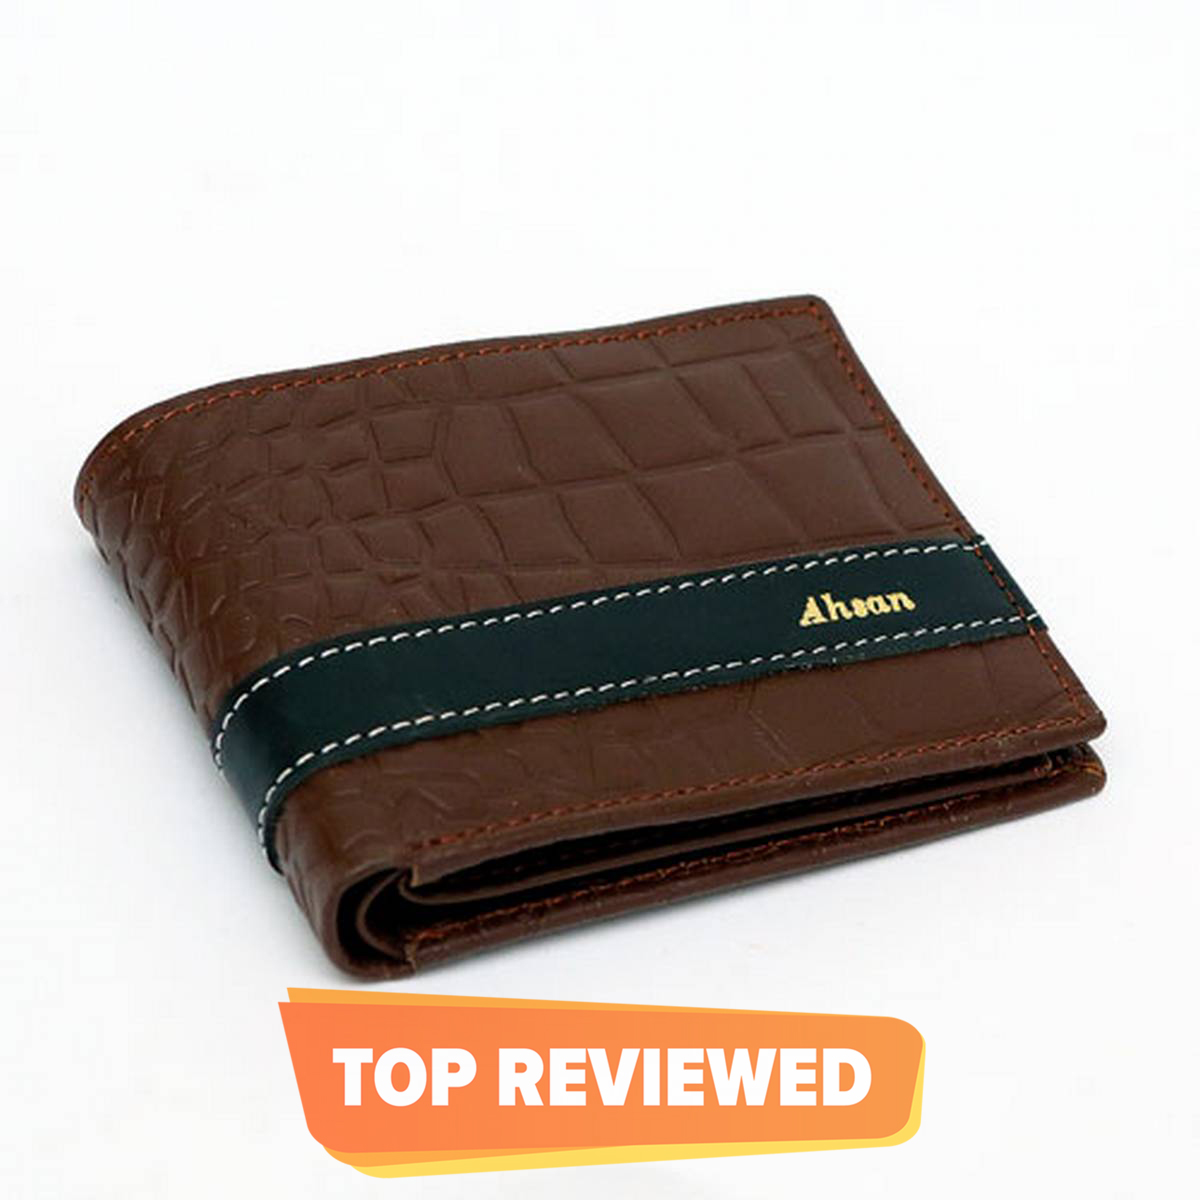 Customized Crocodile Design Leather Name Wallet With Beautiful BoxPacking